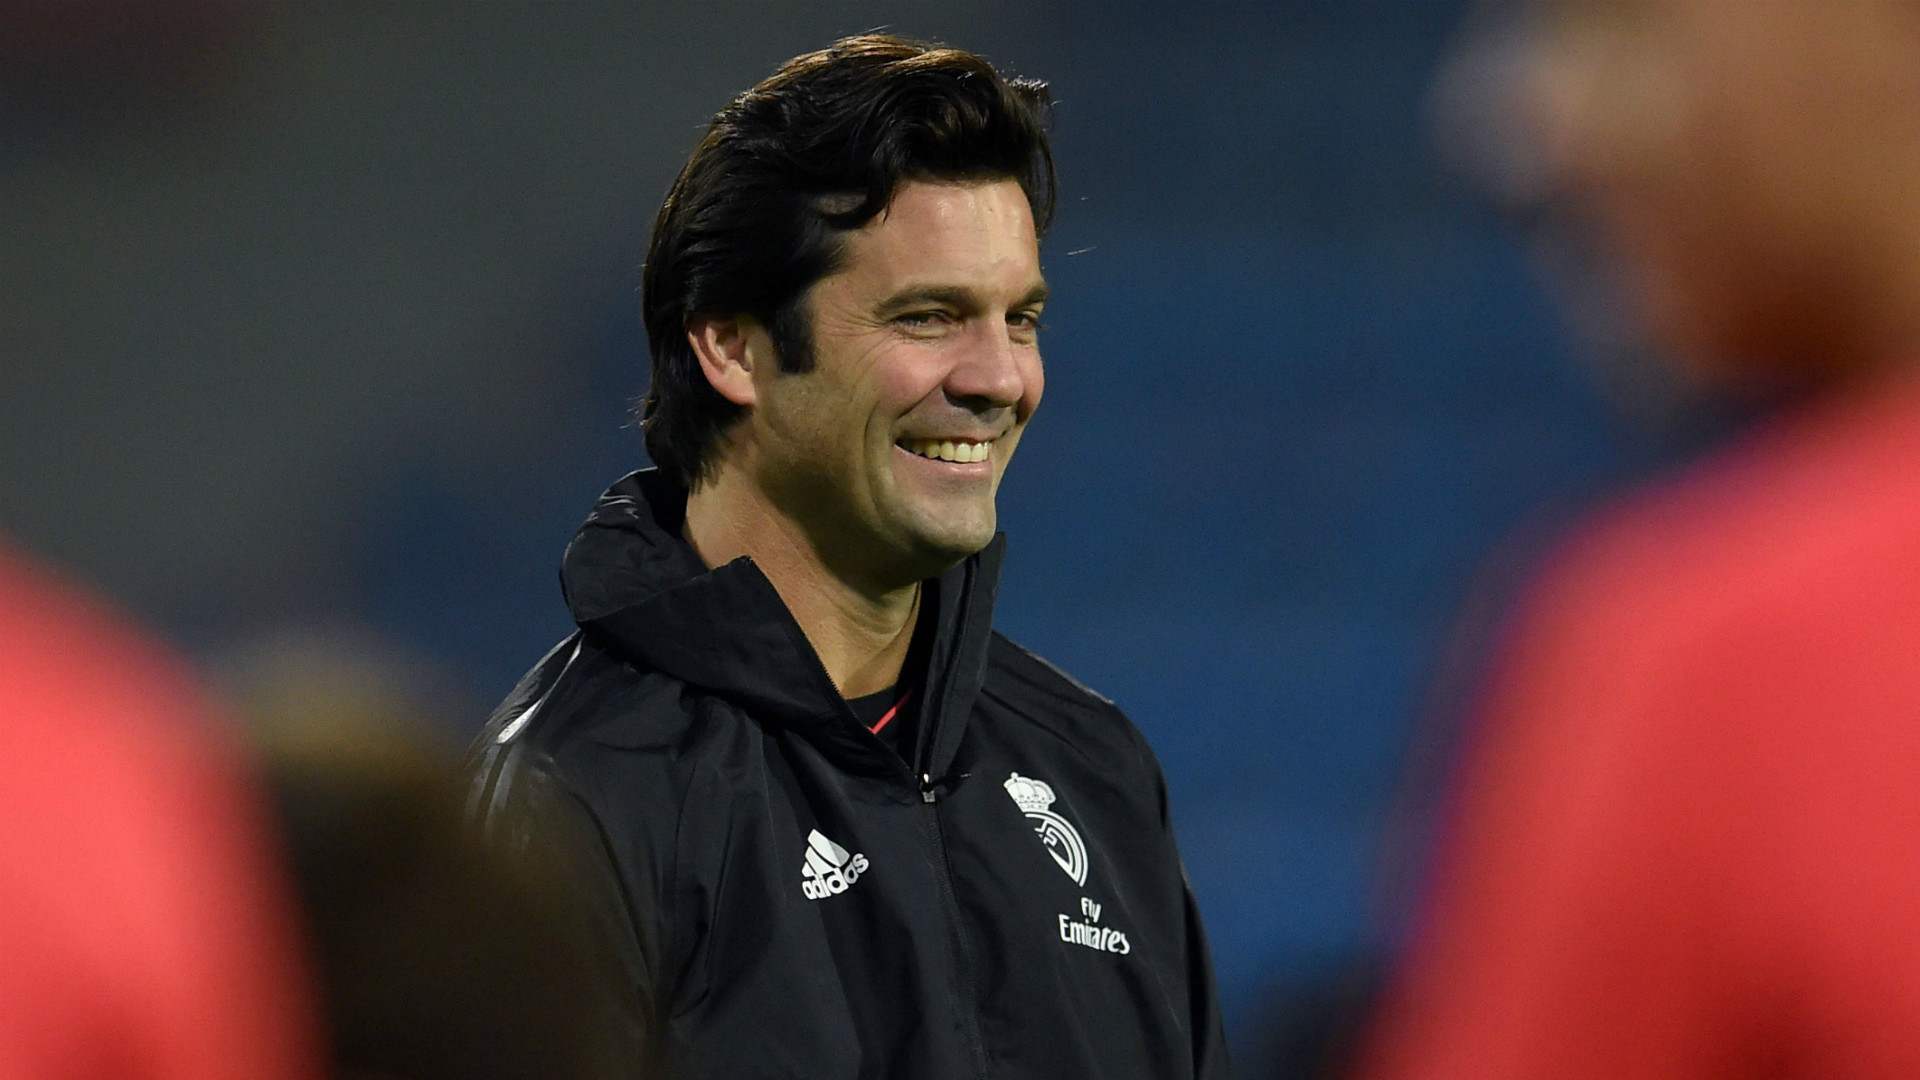 Real Madrid name Santiago Solari as permanent manager until 2021